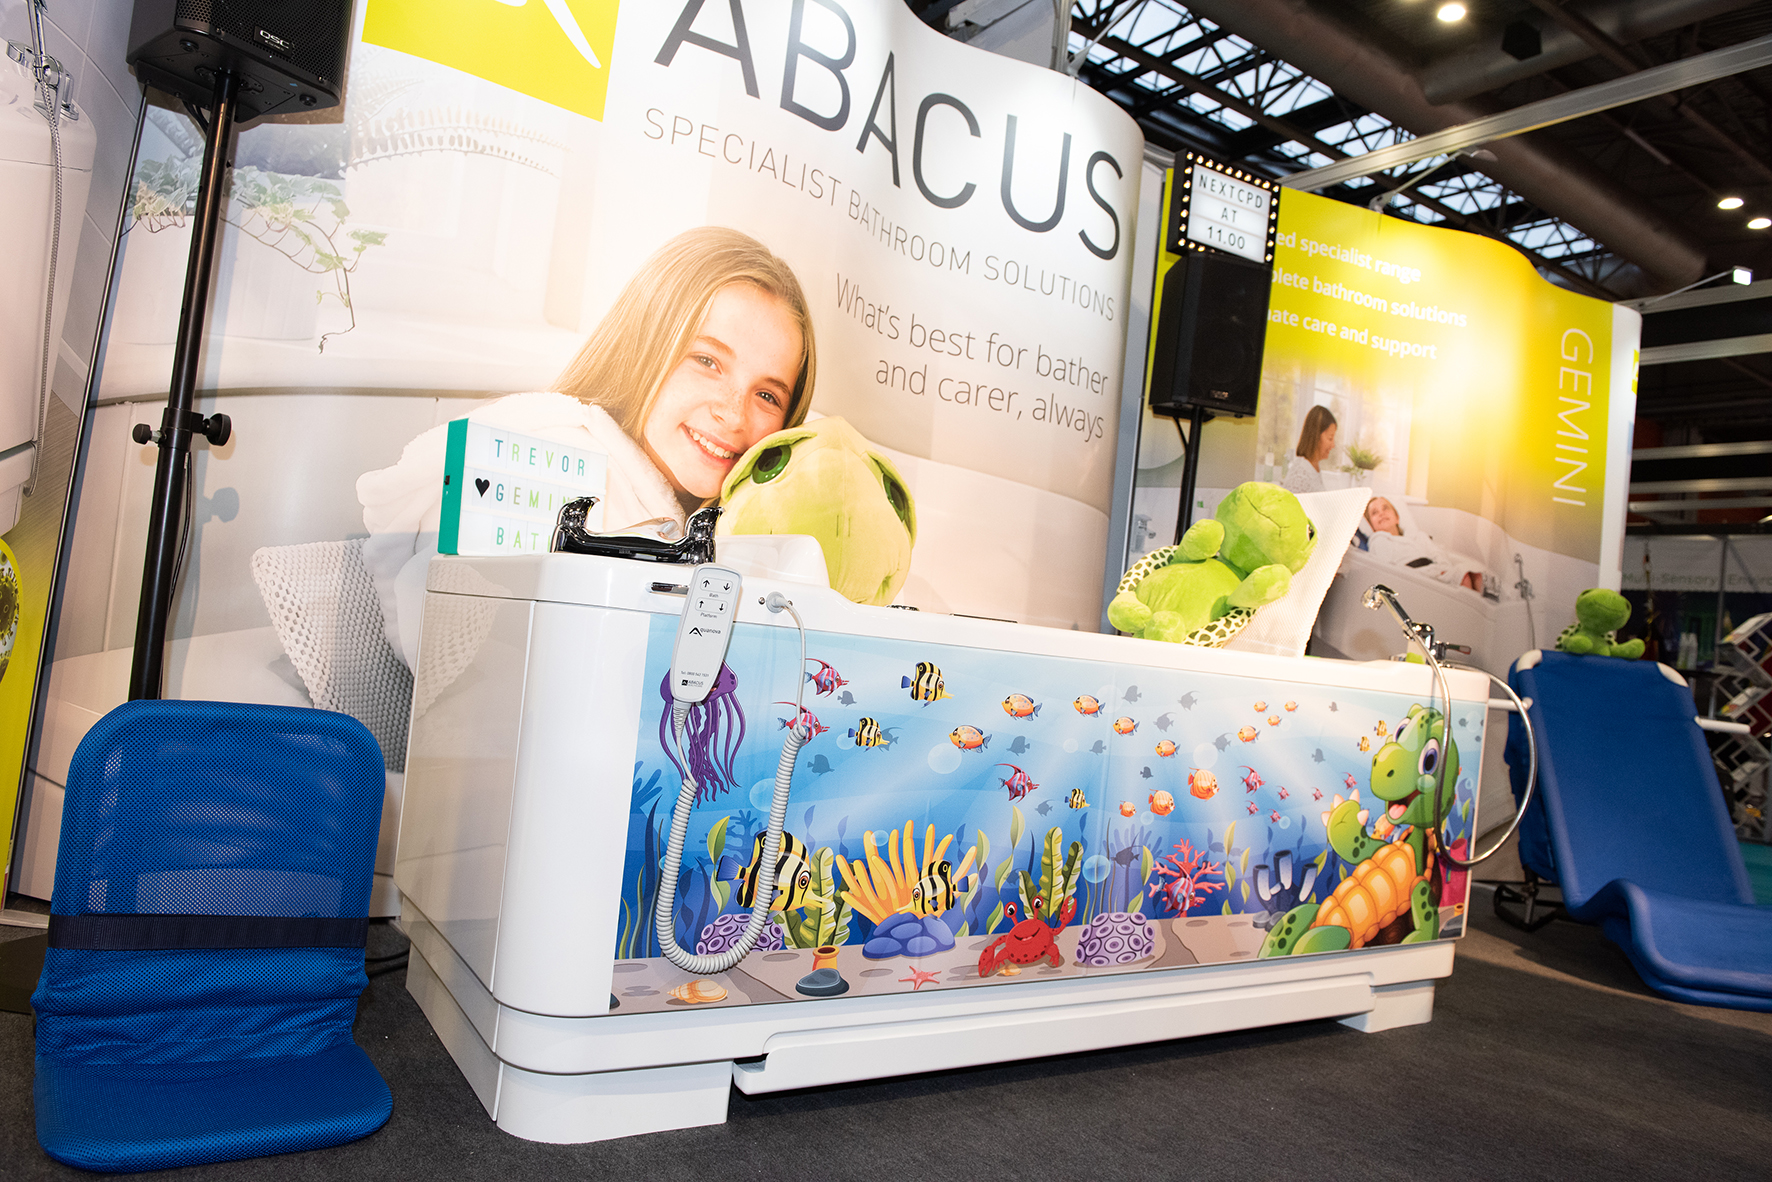 Abacus to present new Gemini 2000 bath, antimicrobial technology and CPD seminar at Kidz Middle